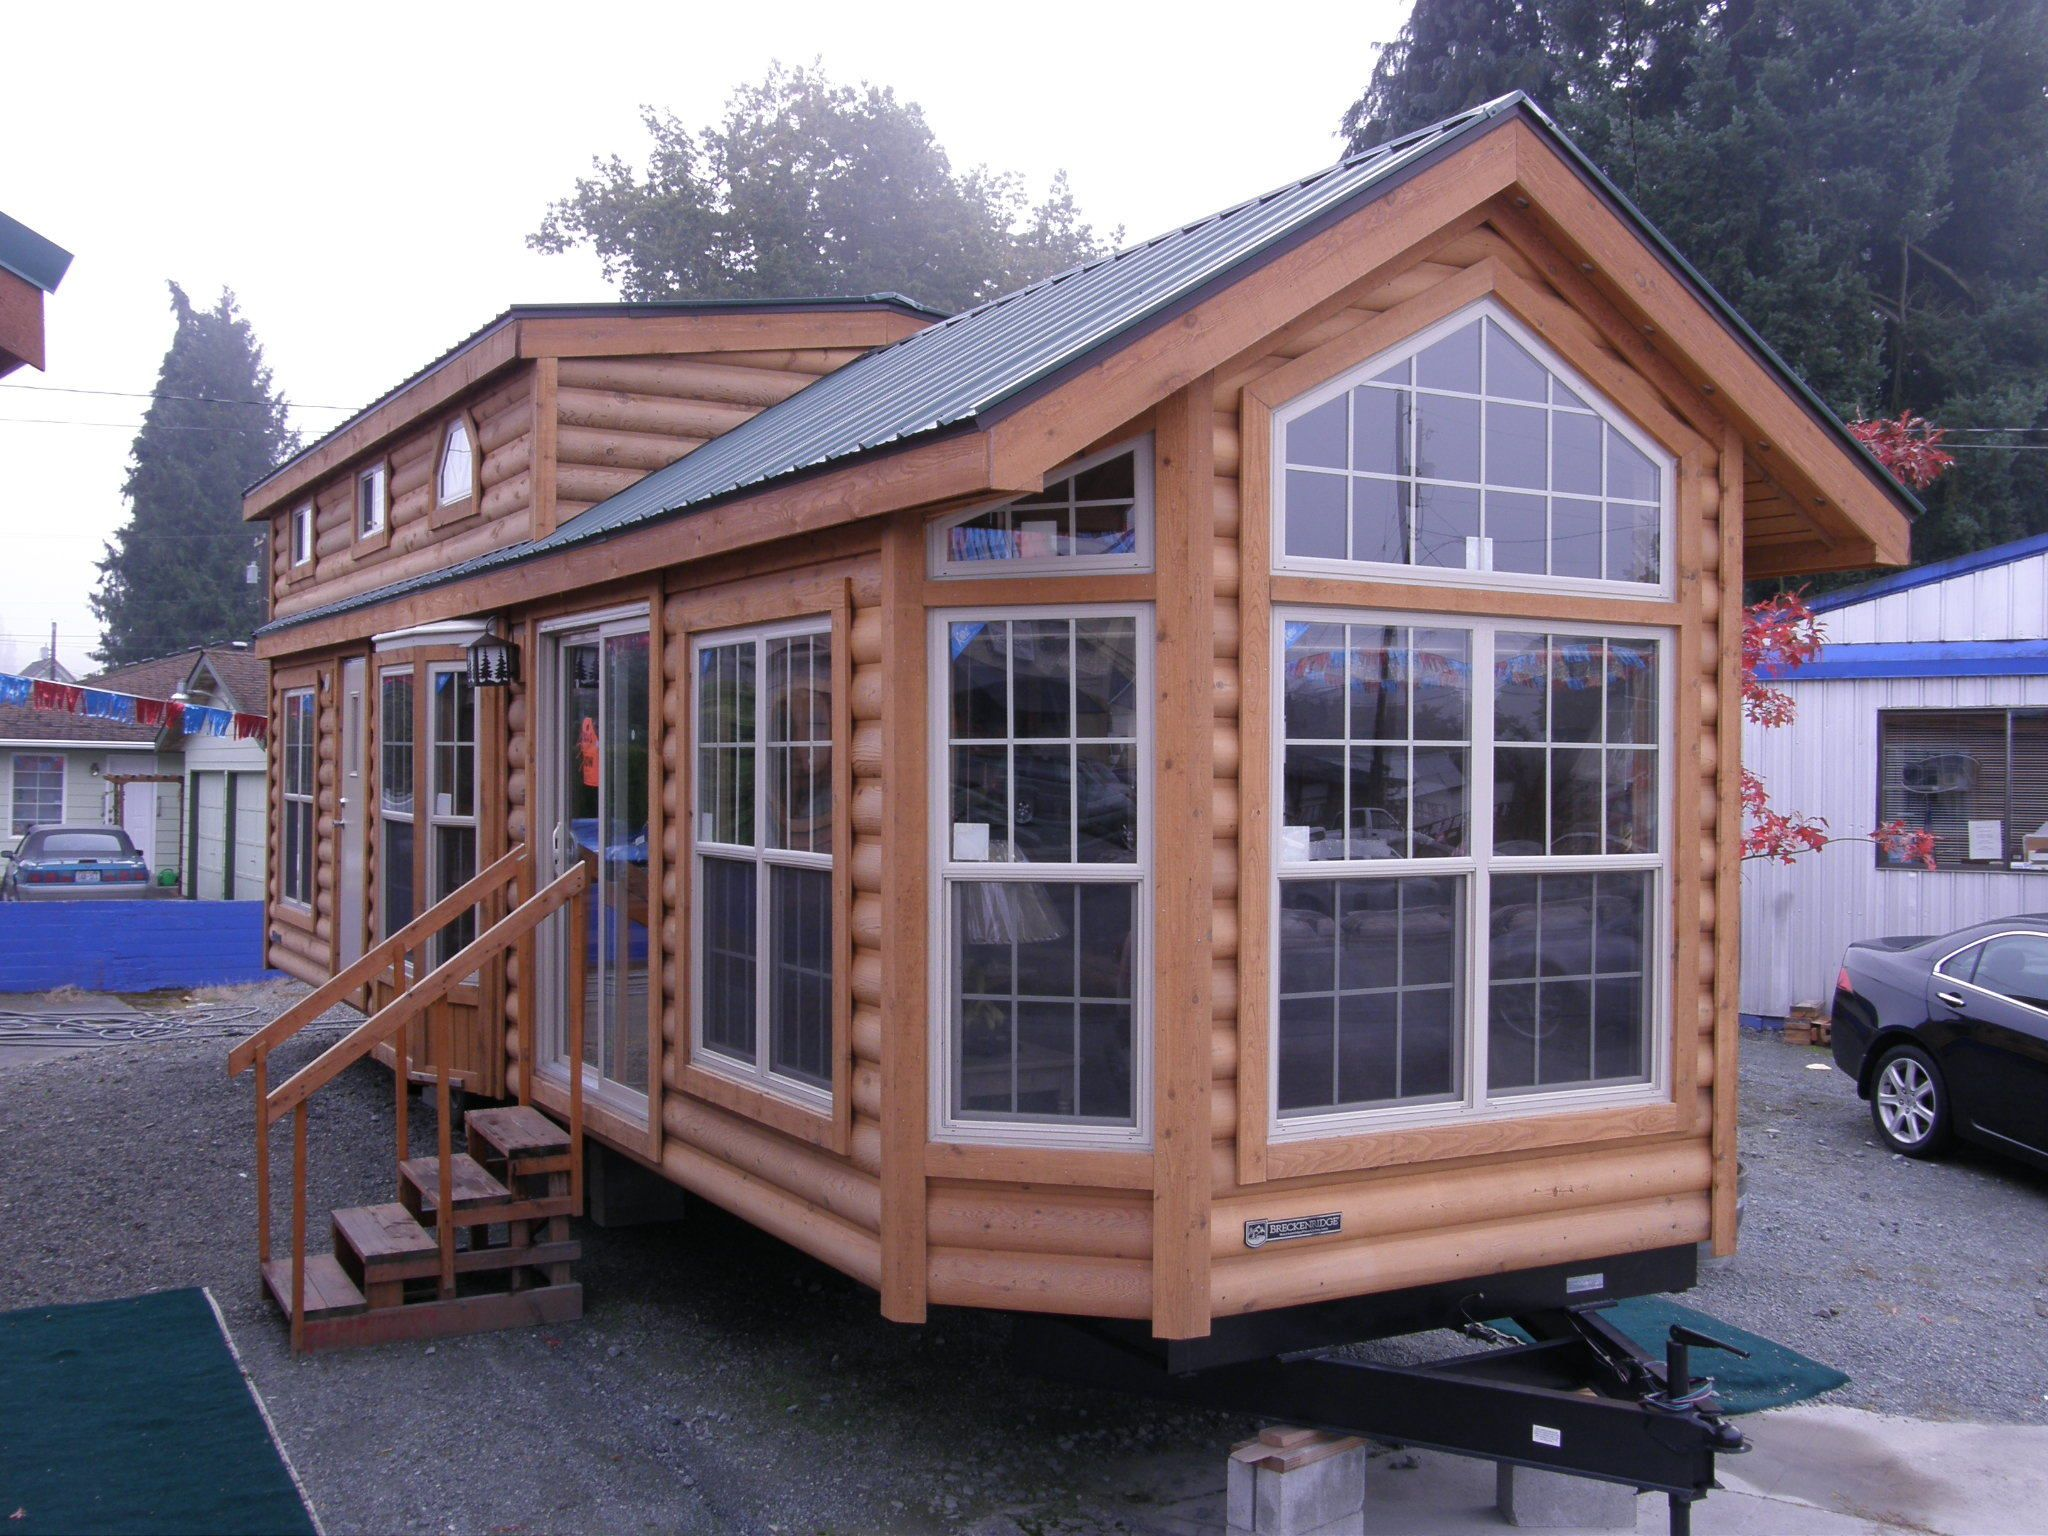 House On Wheels Craigslist Visit Open Big Tiny House On: tiny houses on wheels for sale